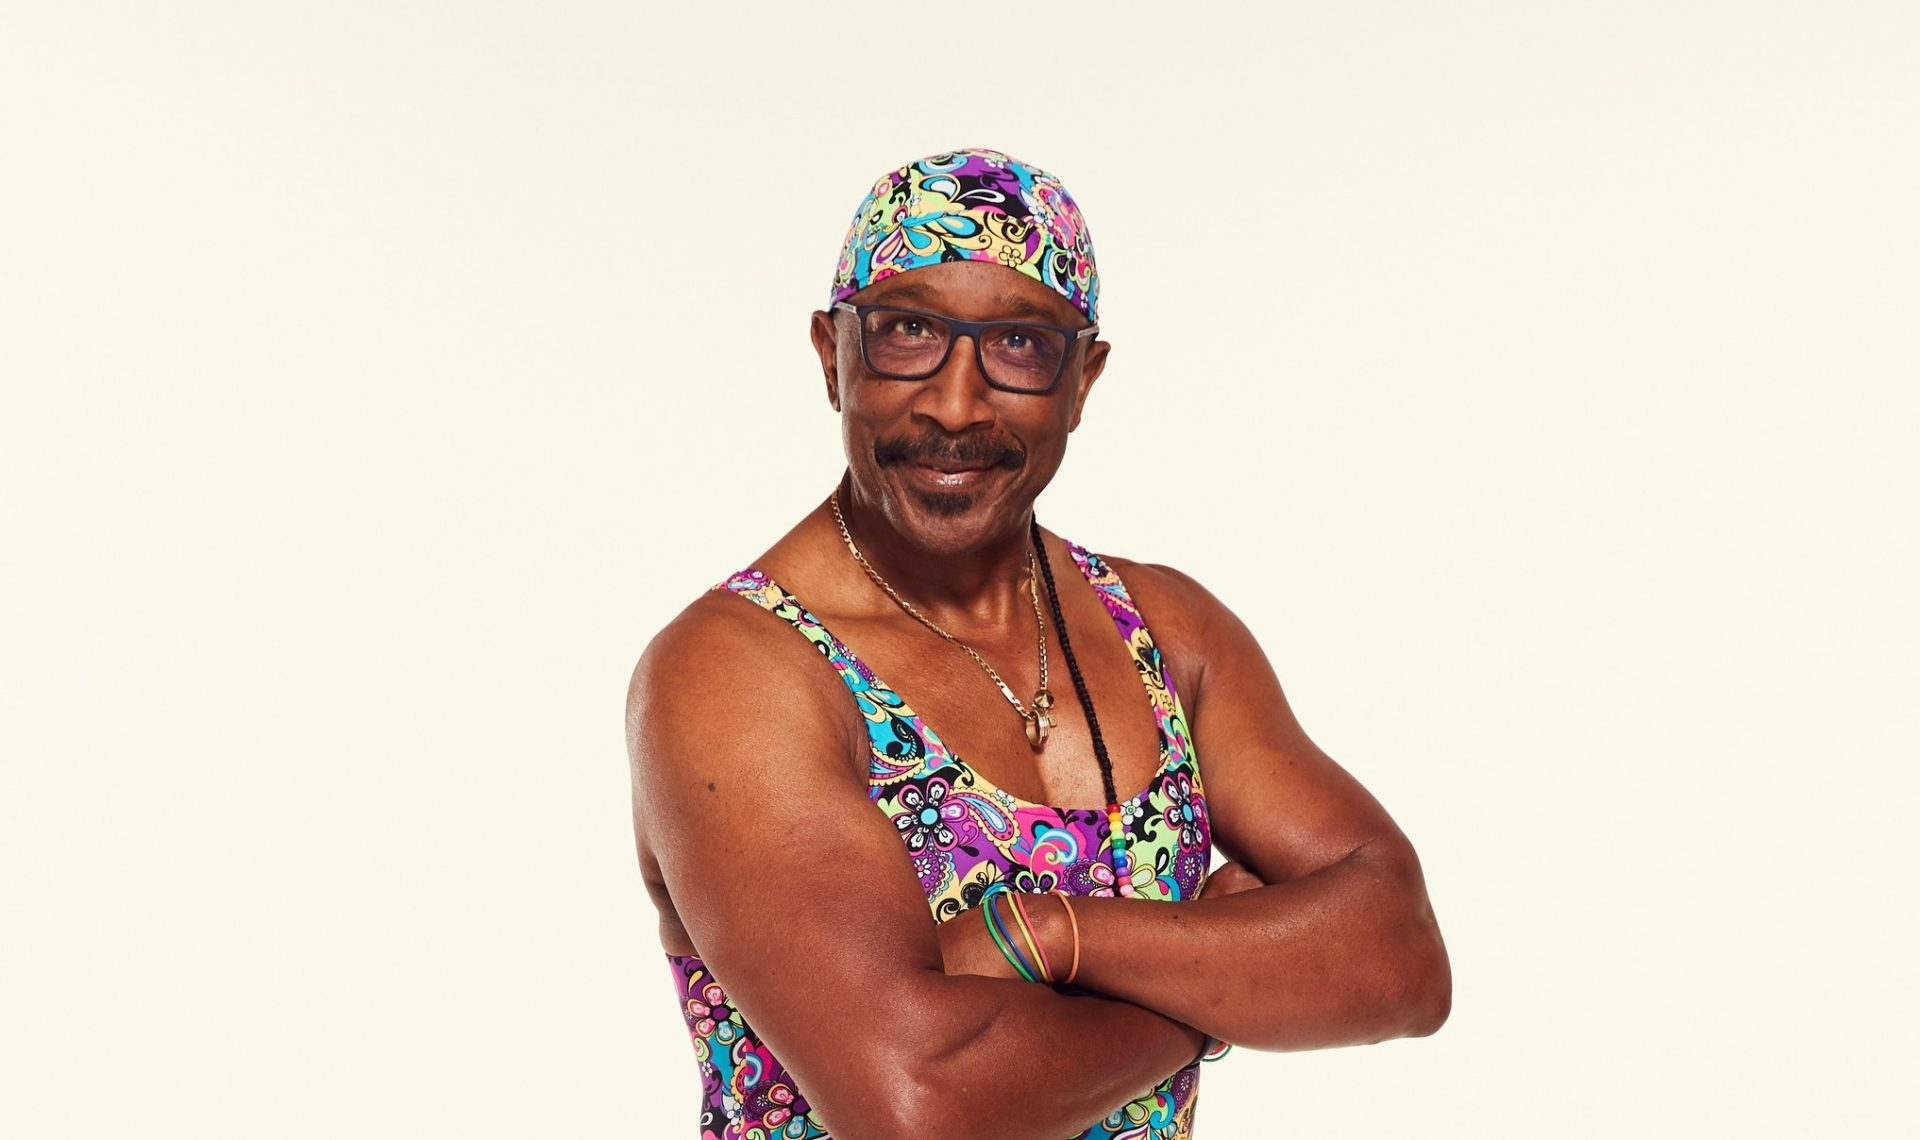 Mr Motivator's six steps for staying mentally and physically strong in lockdown